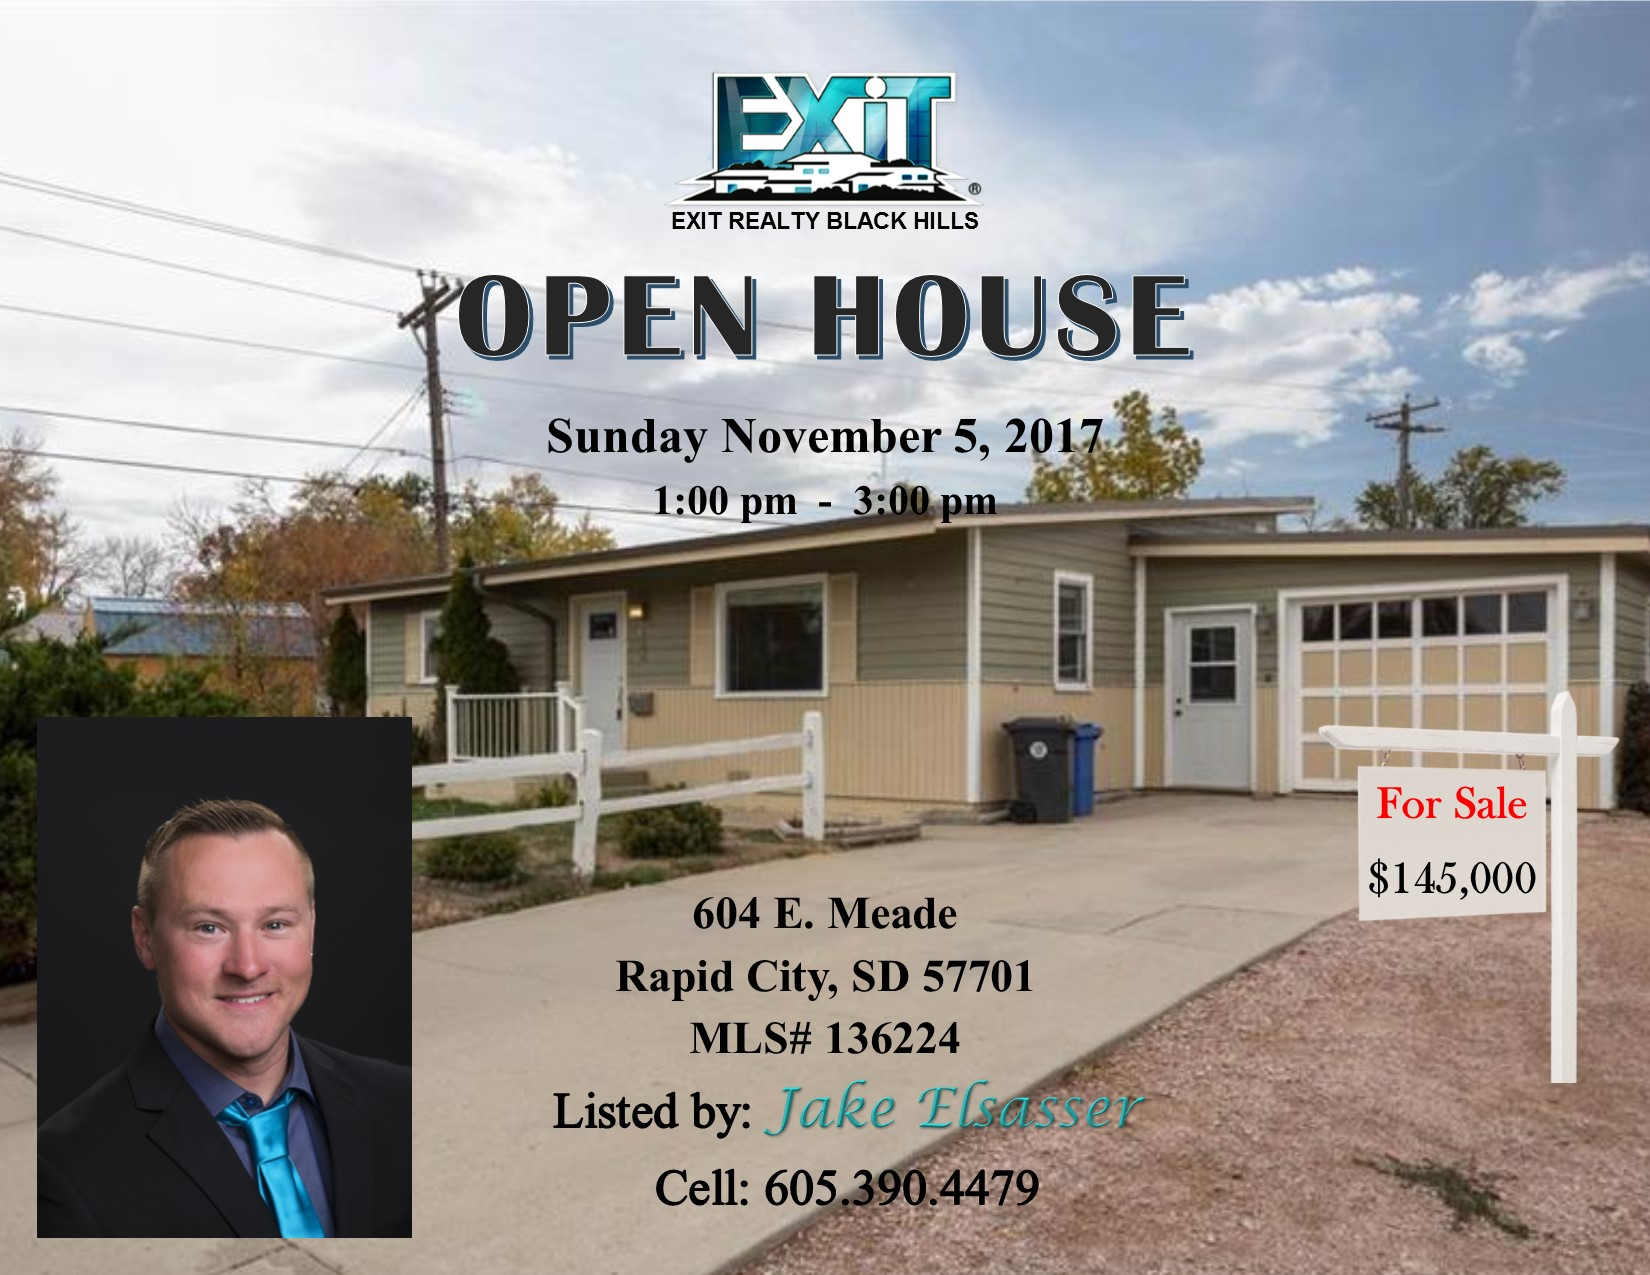 OPEN HOUSE for November 5, 2017